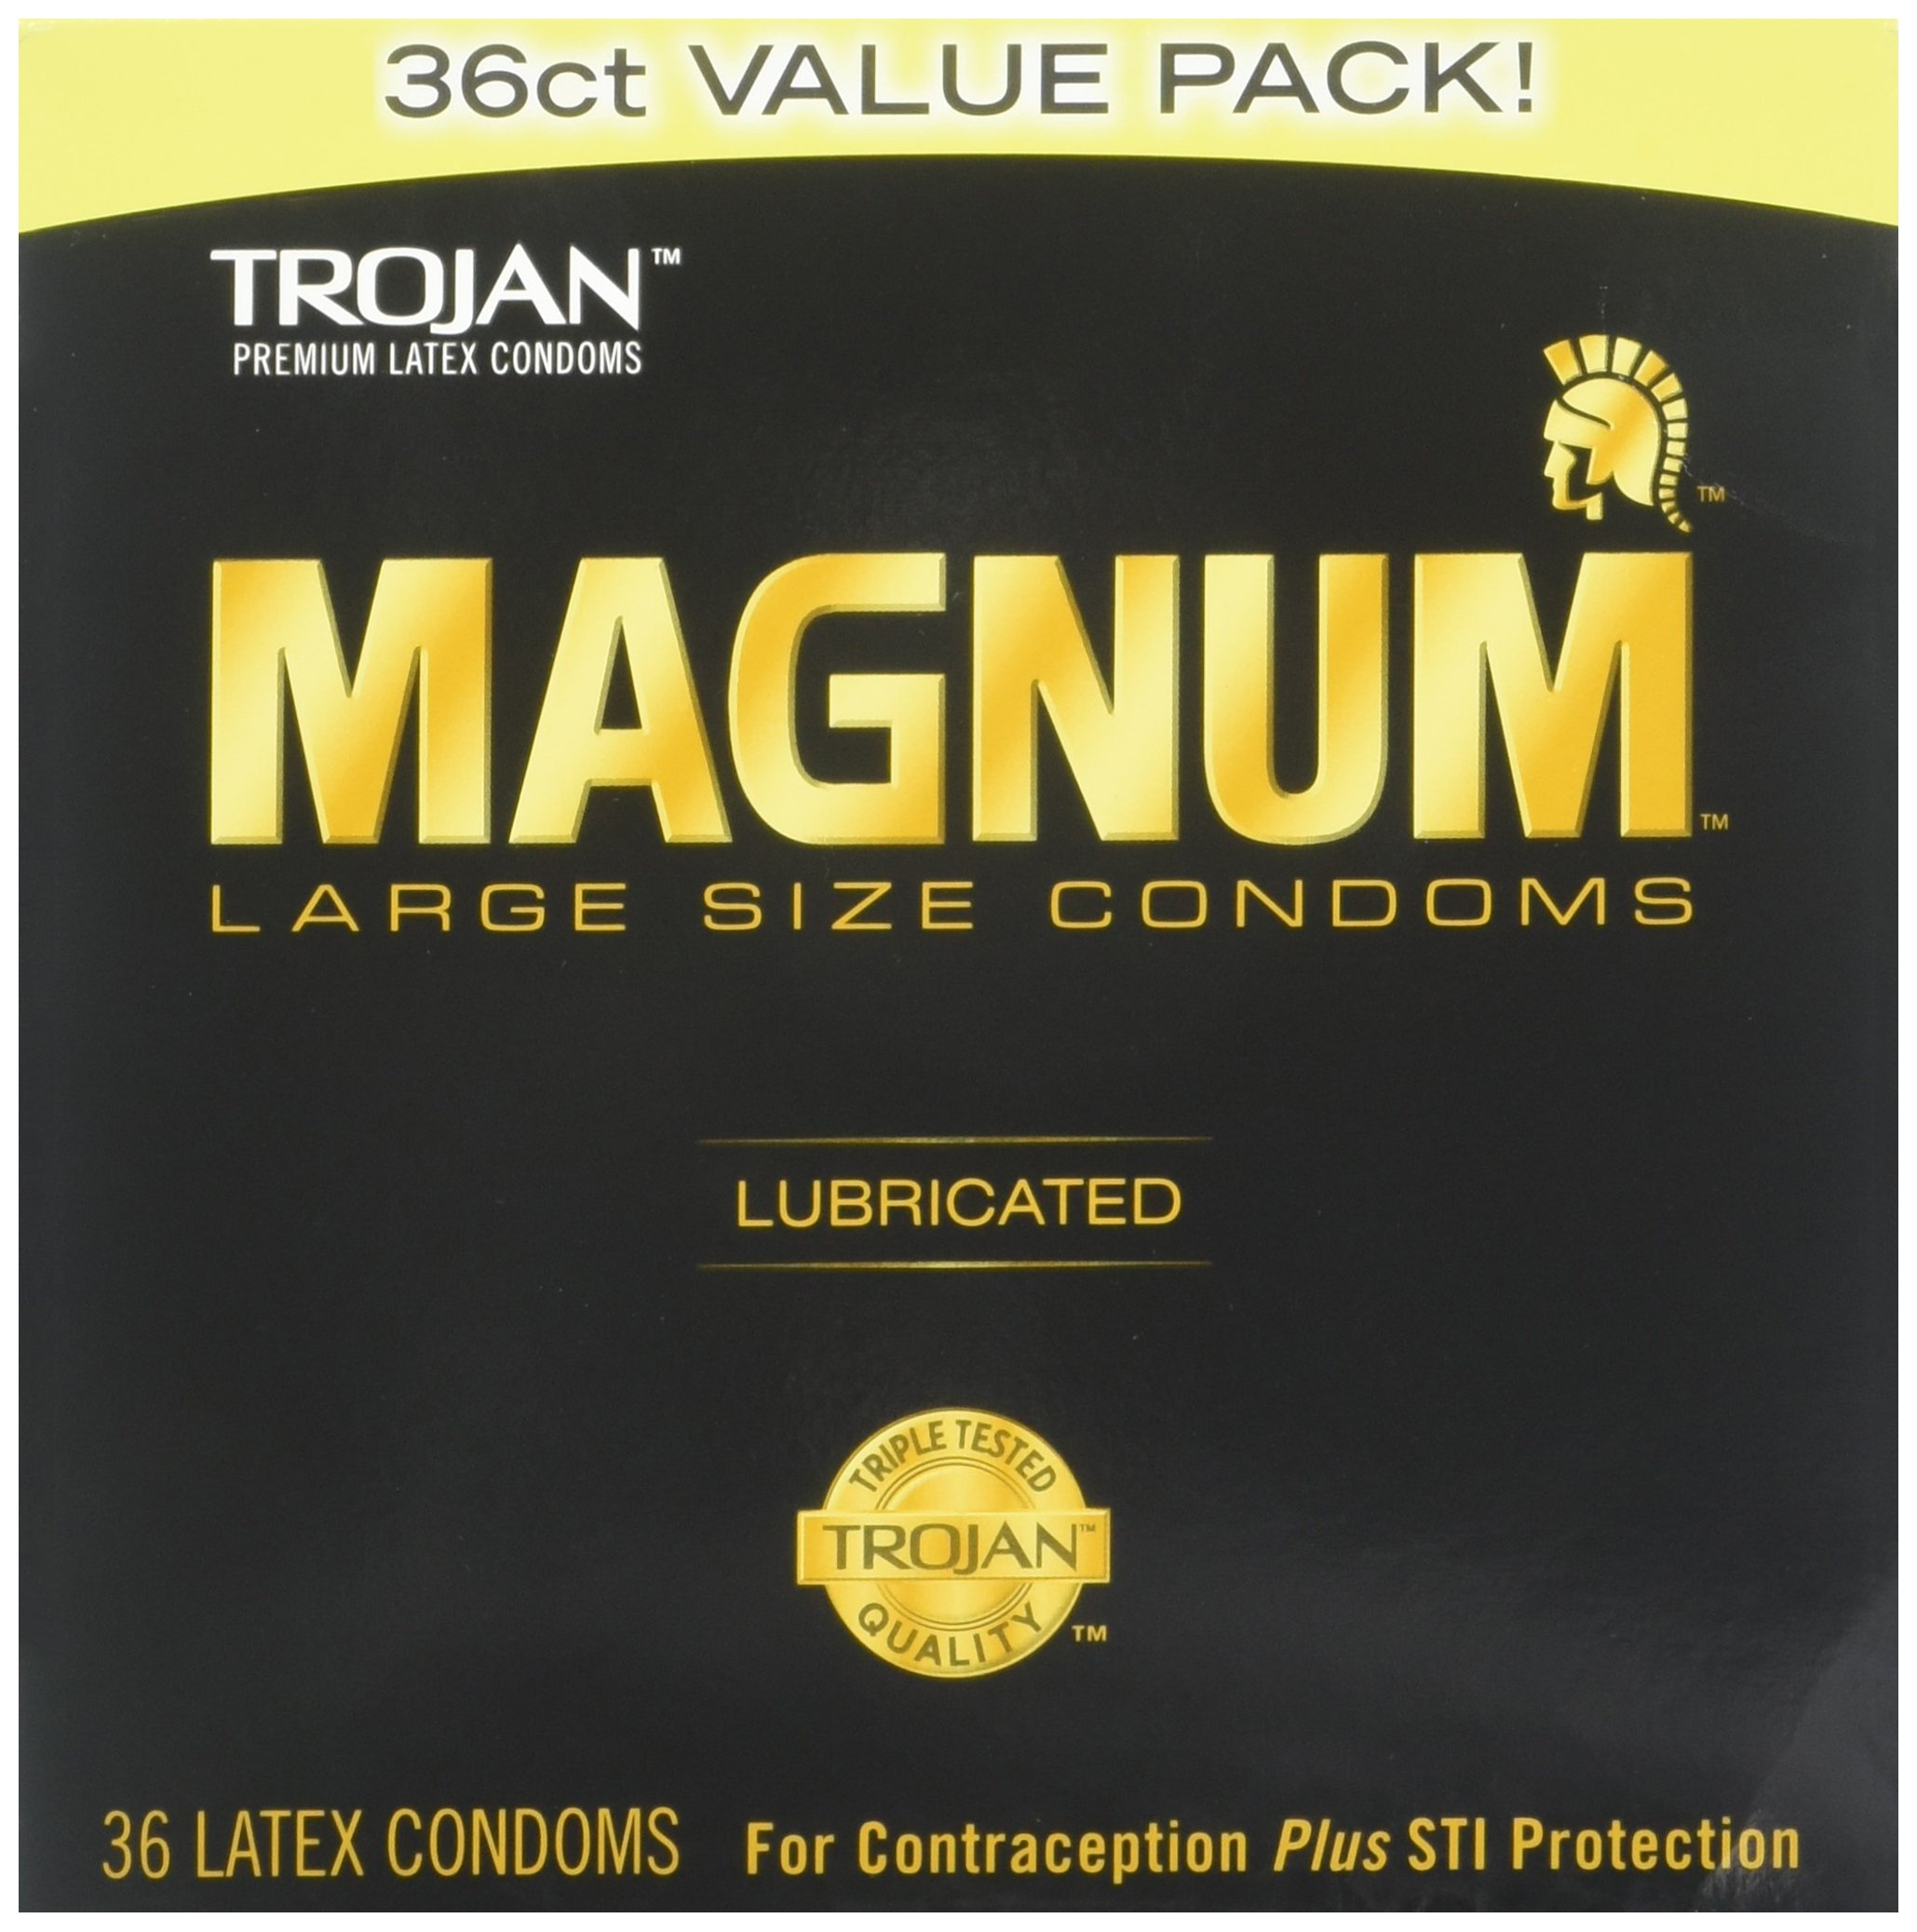 TROJAN Magnum Lubricated Latex Large Size Condoms, 36 ea by Trojan (Image #1)